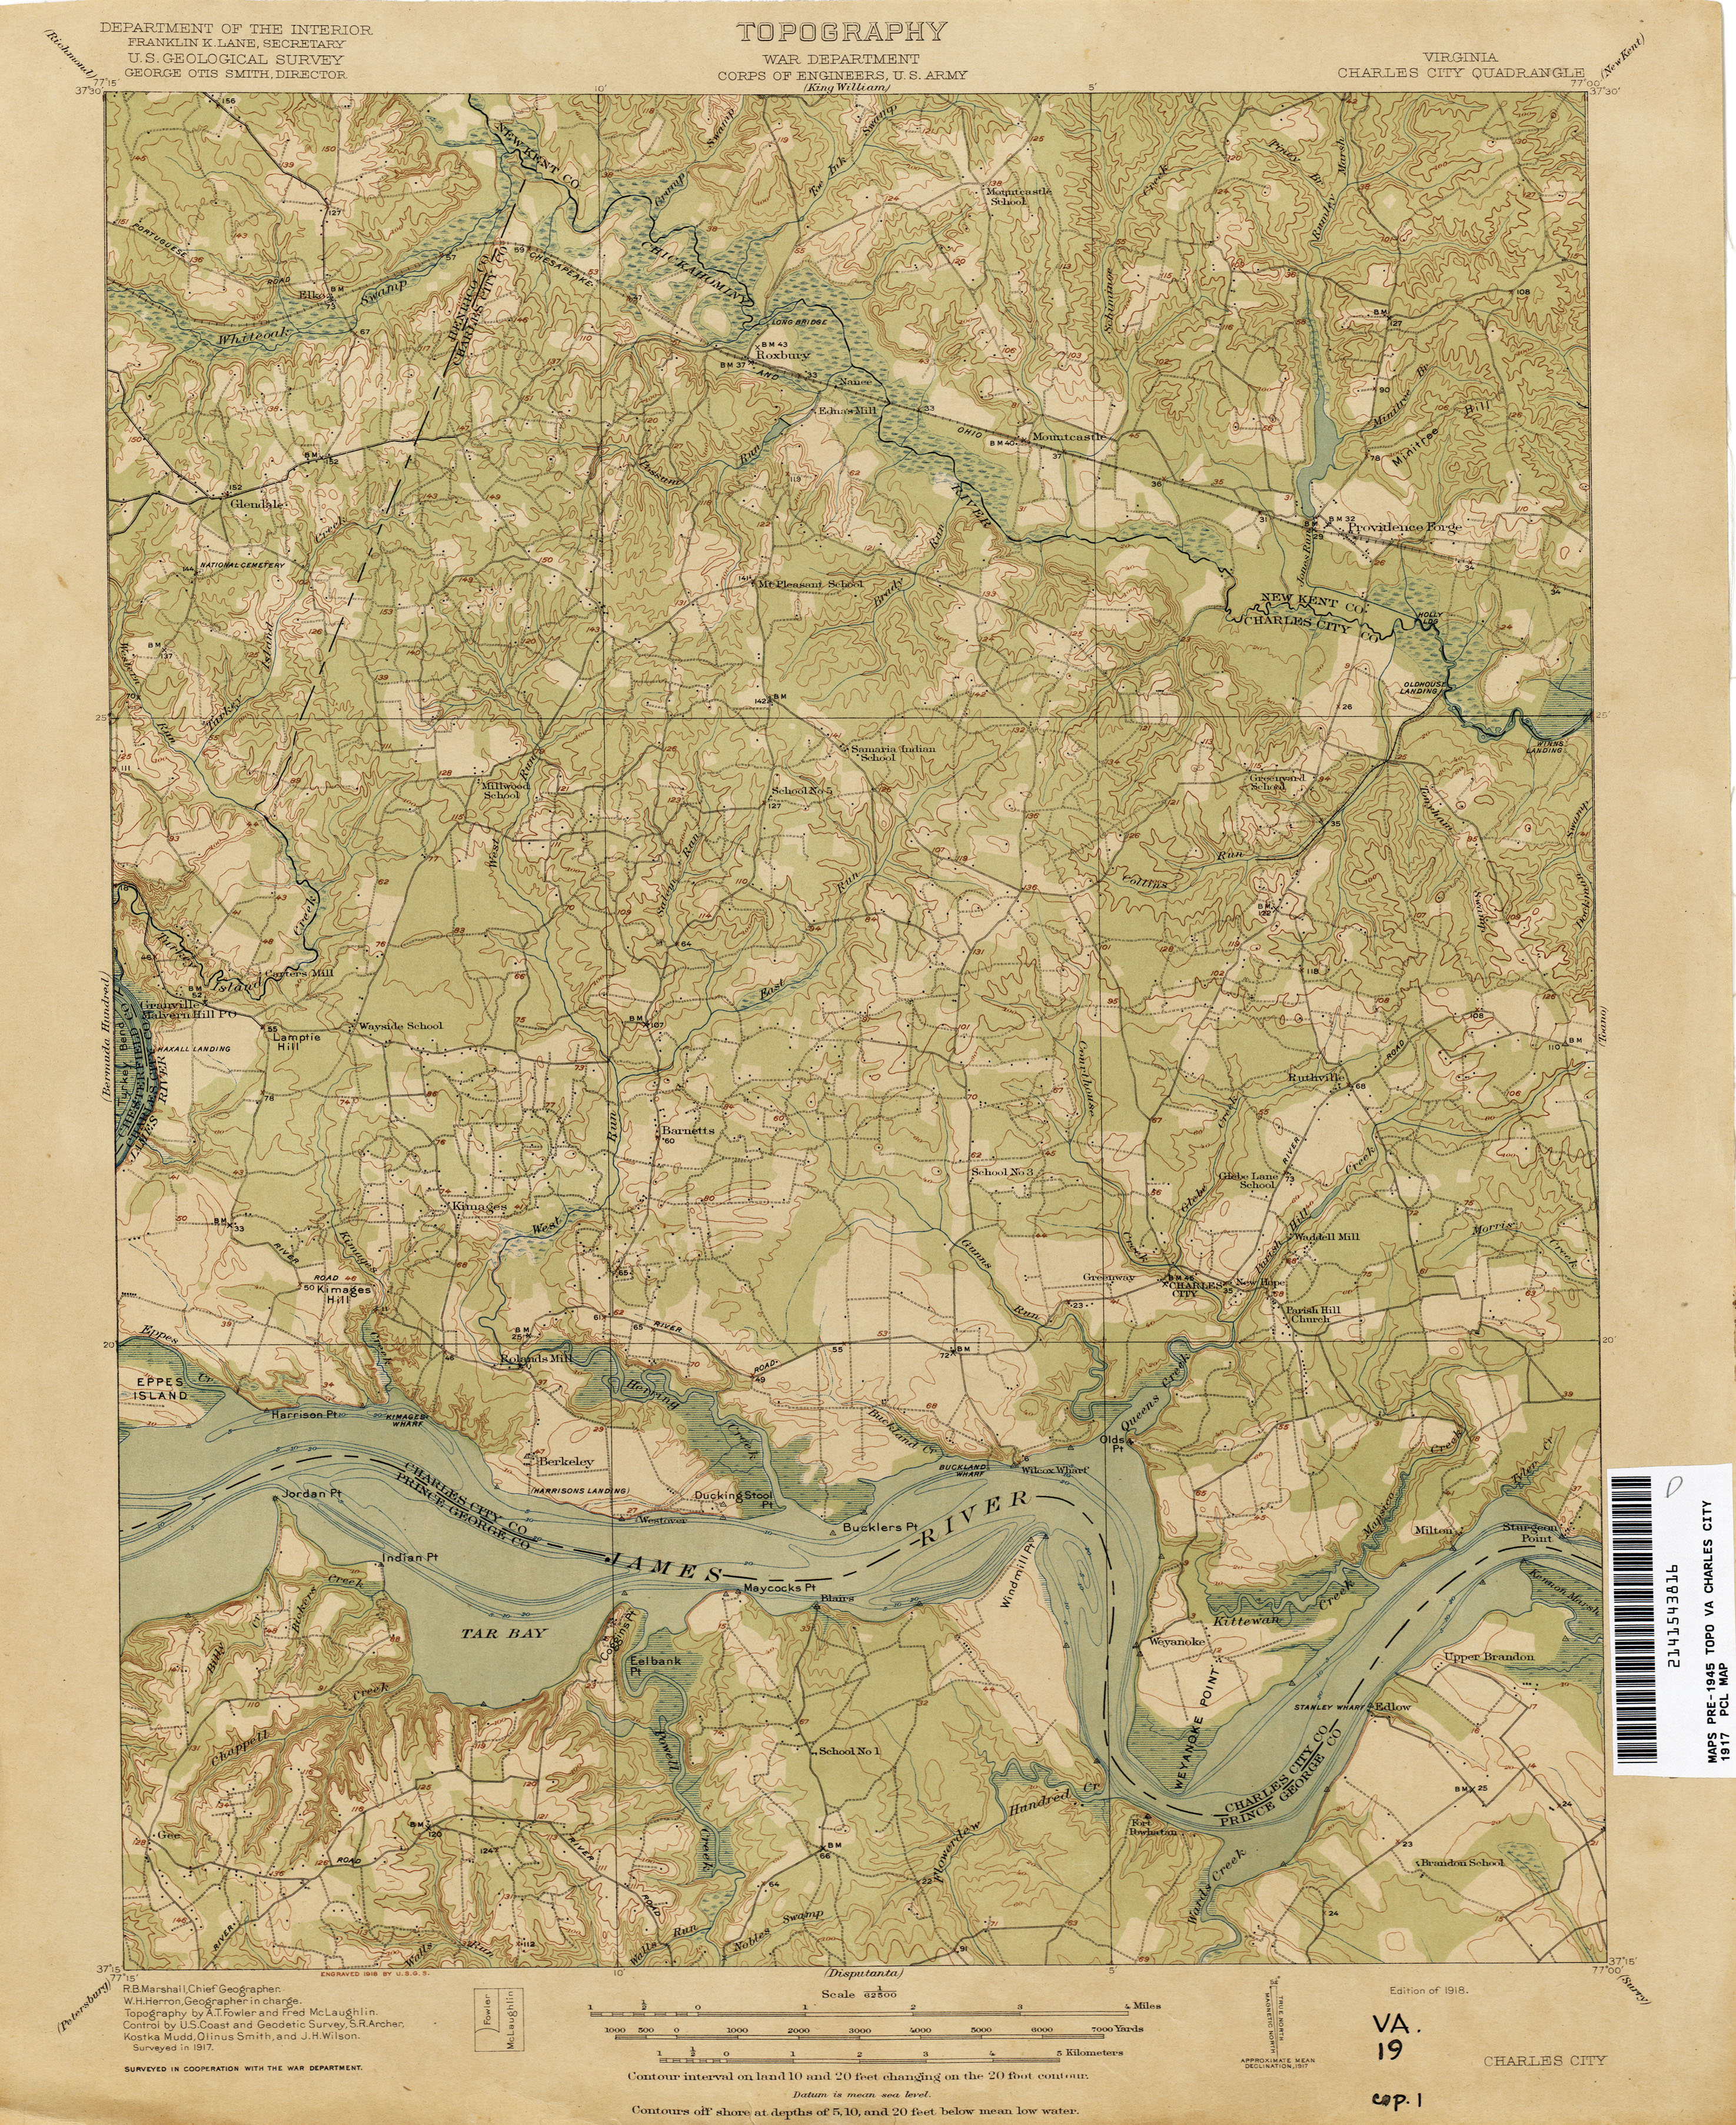 Virginia Historical Topographic Maps Perry Castaneda Map Collection Ut Library Online They are durable, packed full of information and easy to read. university of texas libraries the university of texas at austin